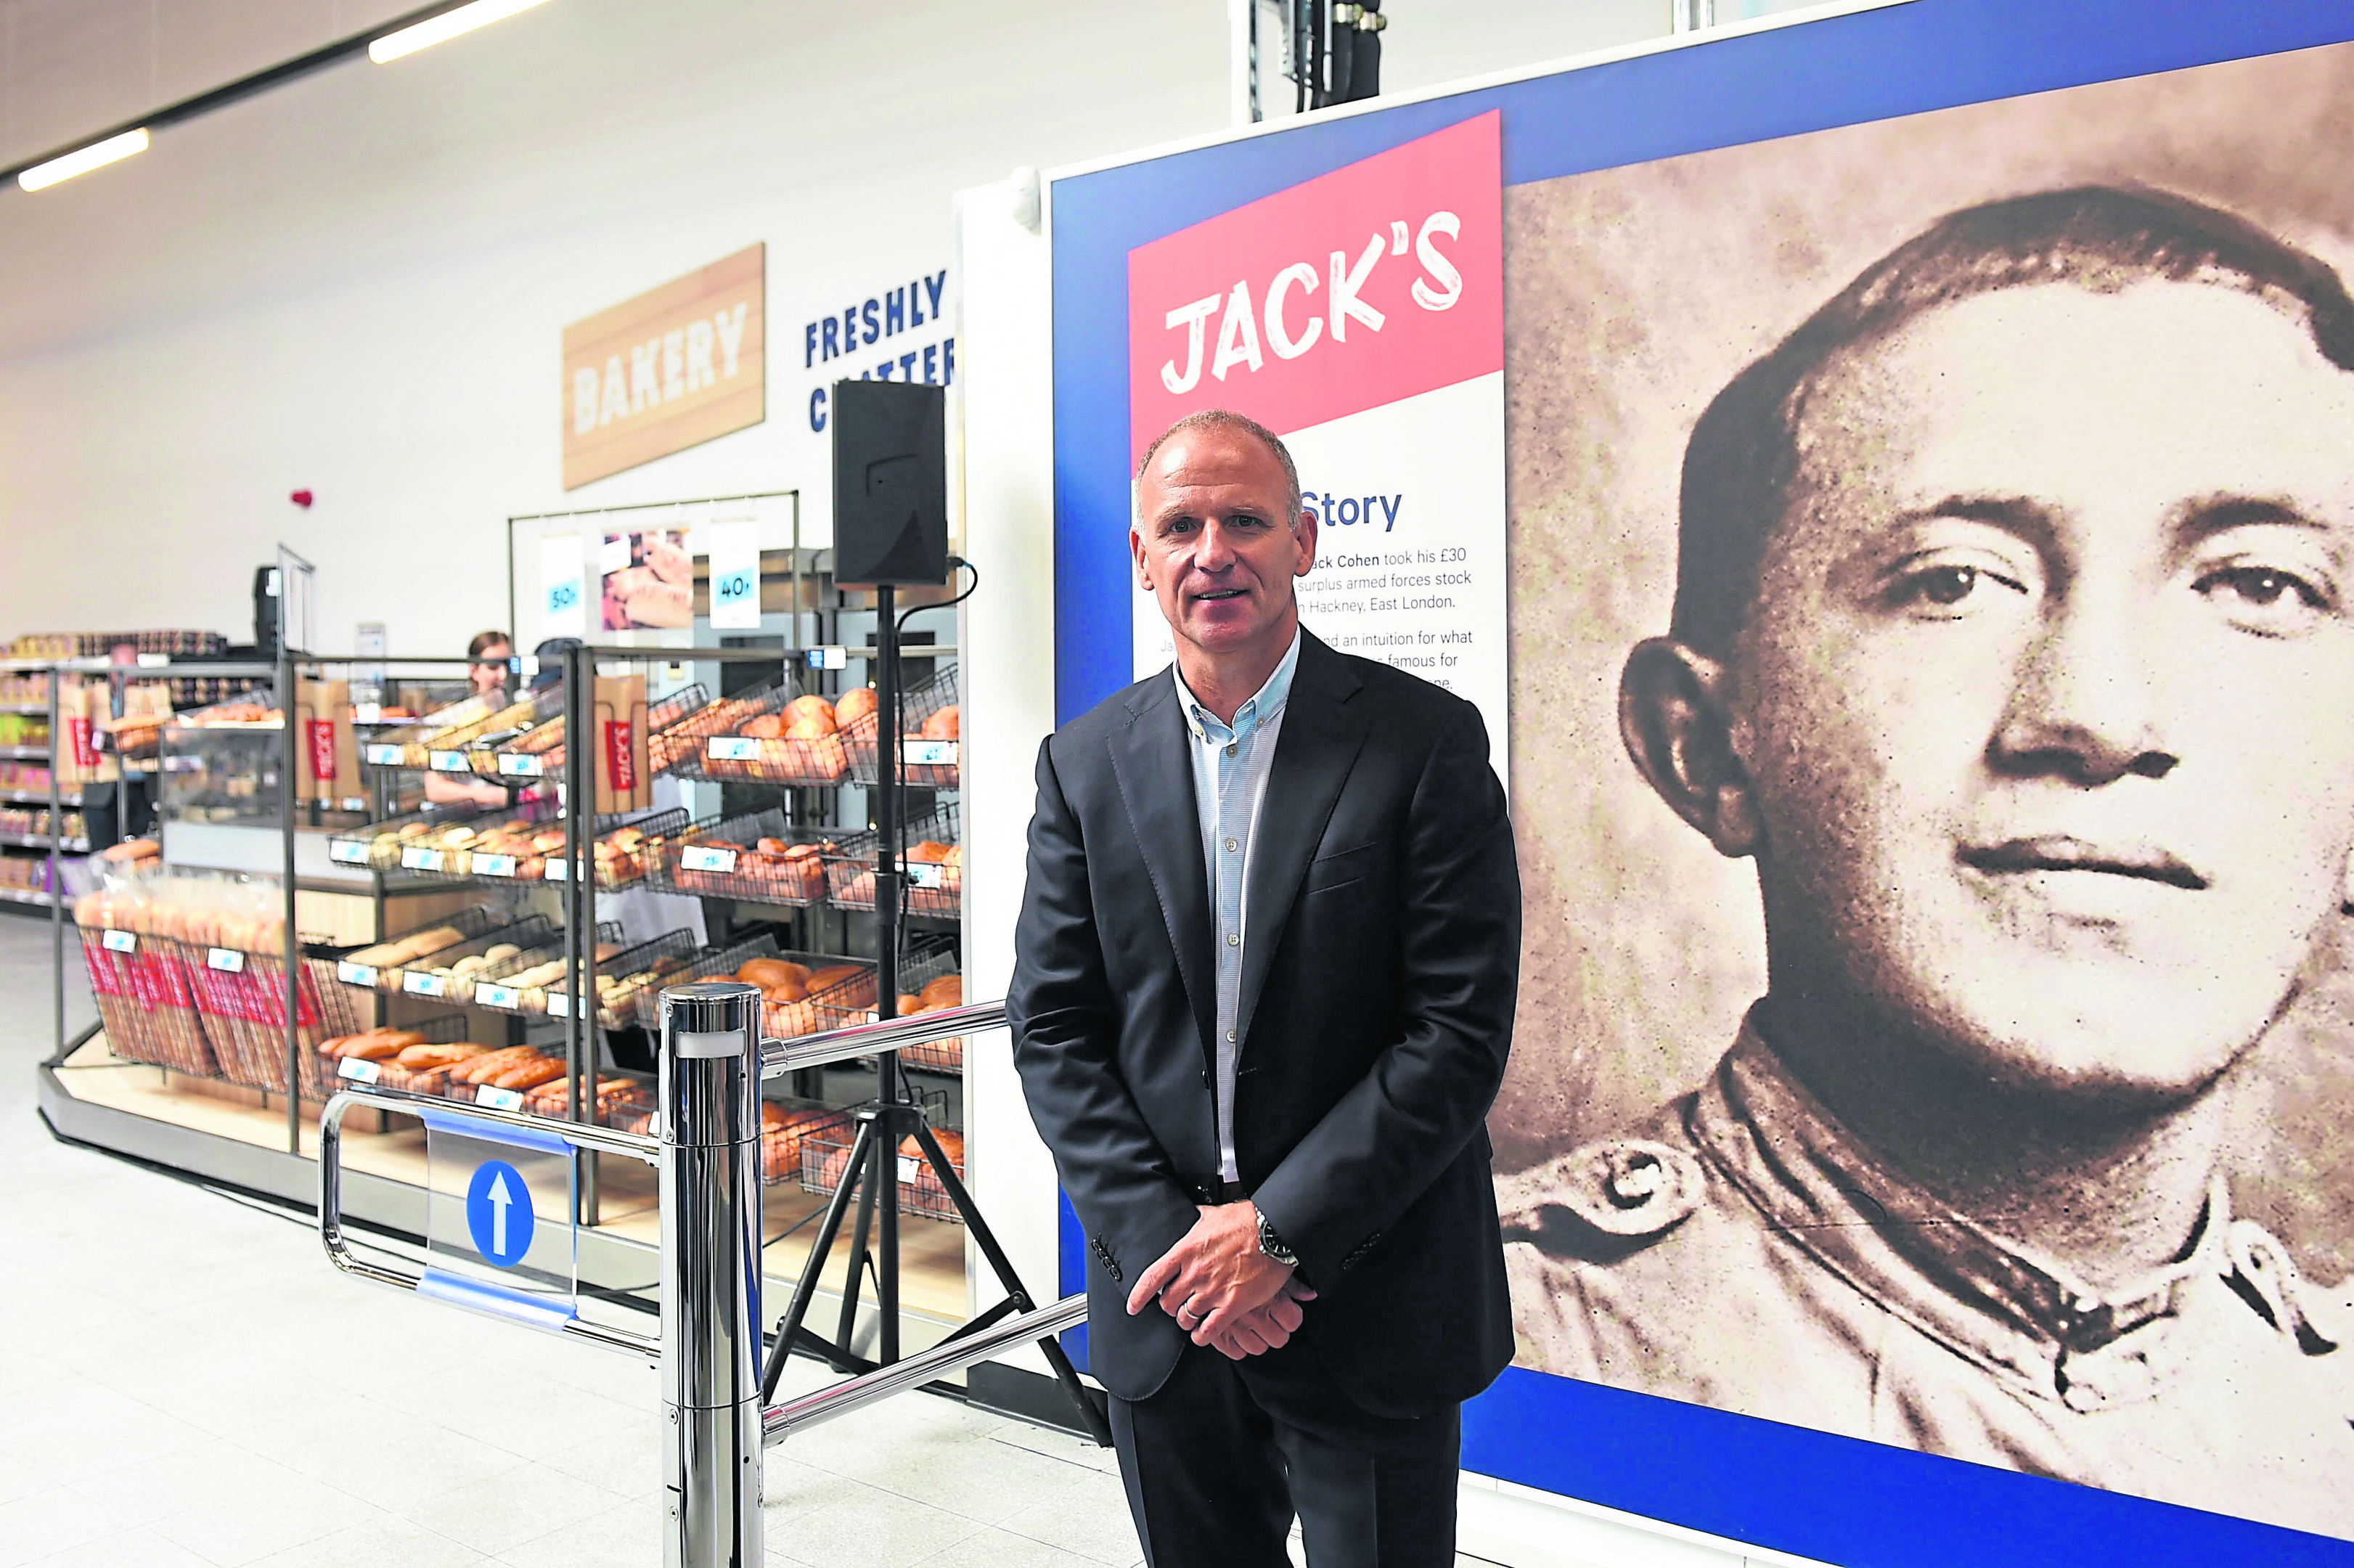 Tesco chief executive Dave Lewis, at the new Jack's store in Chatteris, Cambridgeshire.